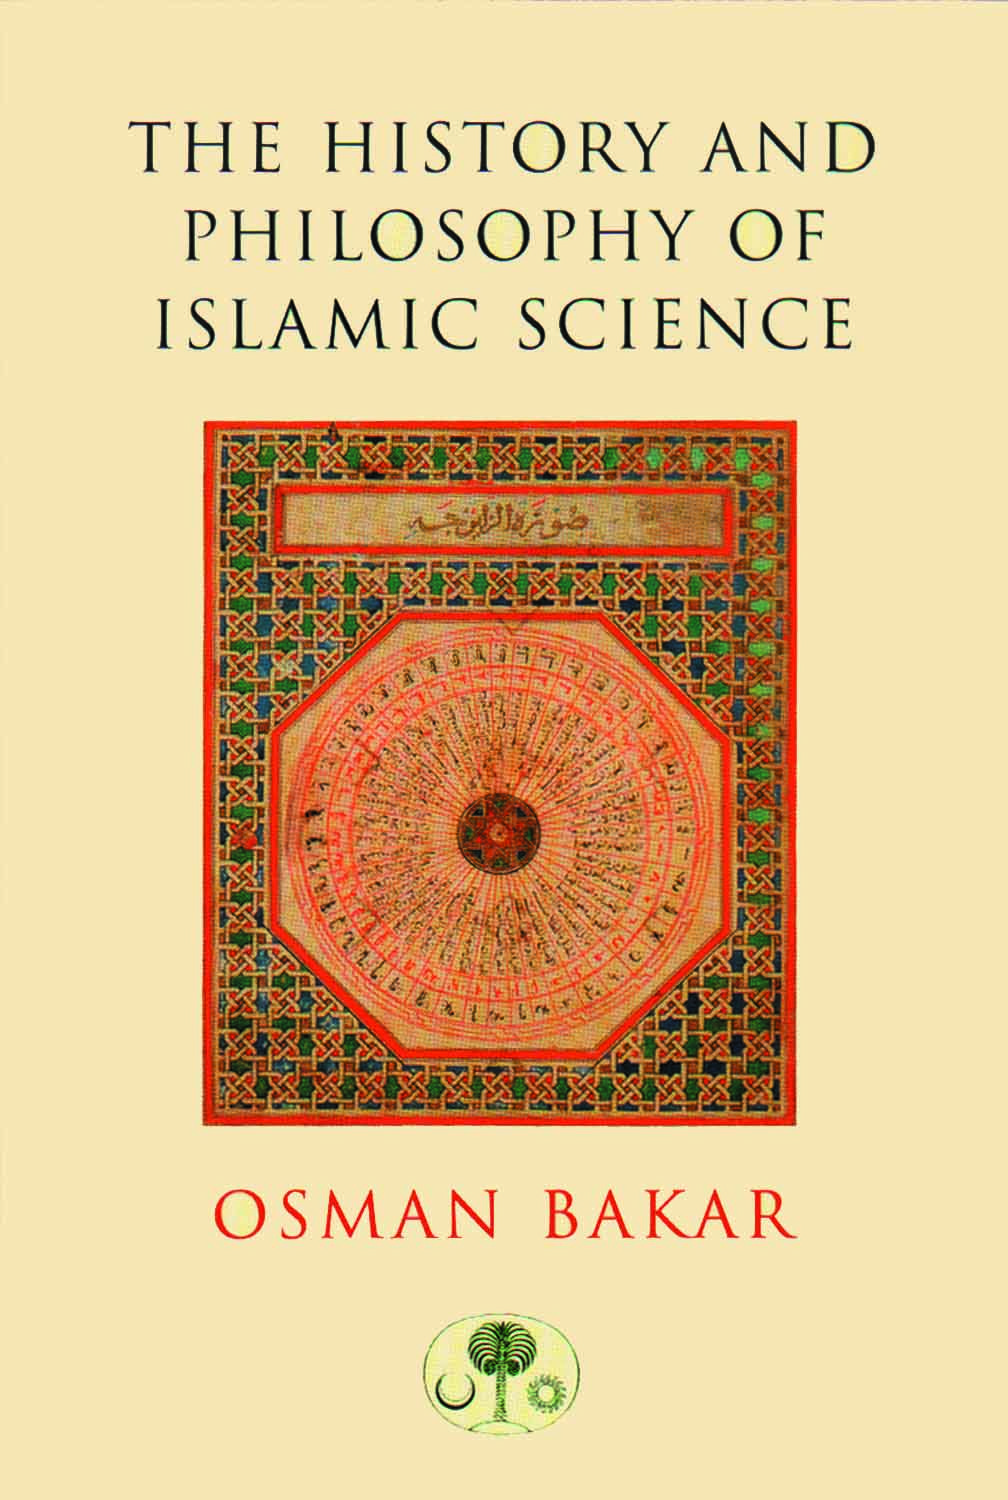 the essays presented in the history and philosophy of islamic the essays presented in the history and philosophy of islamic science discuss the principles behind the